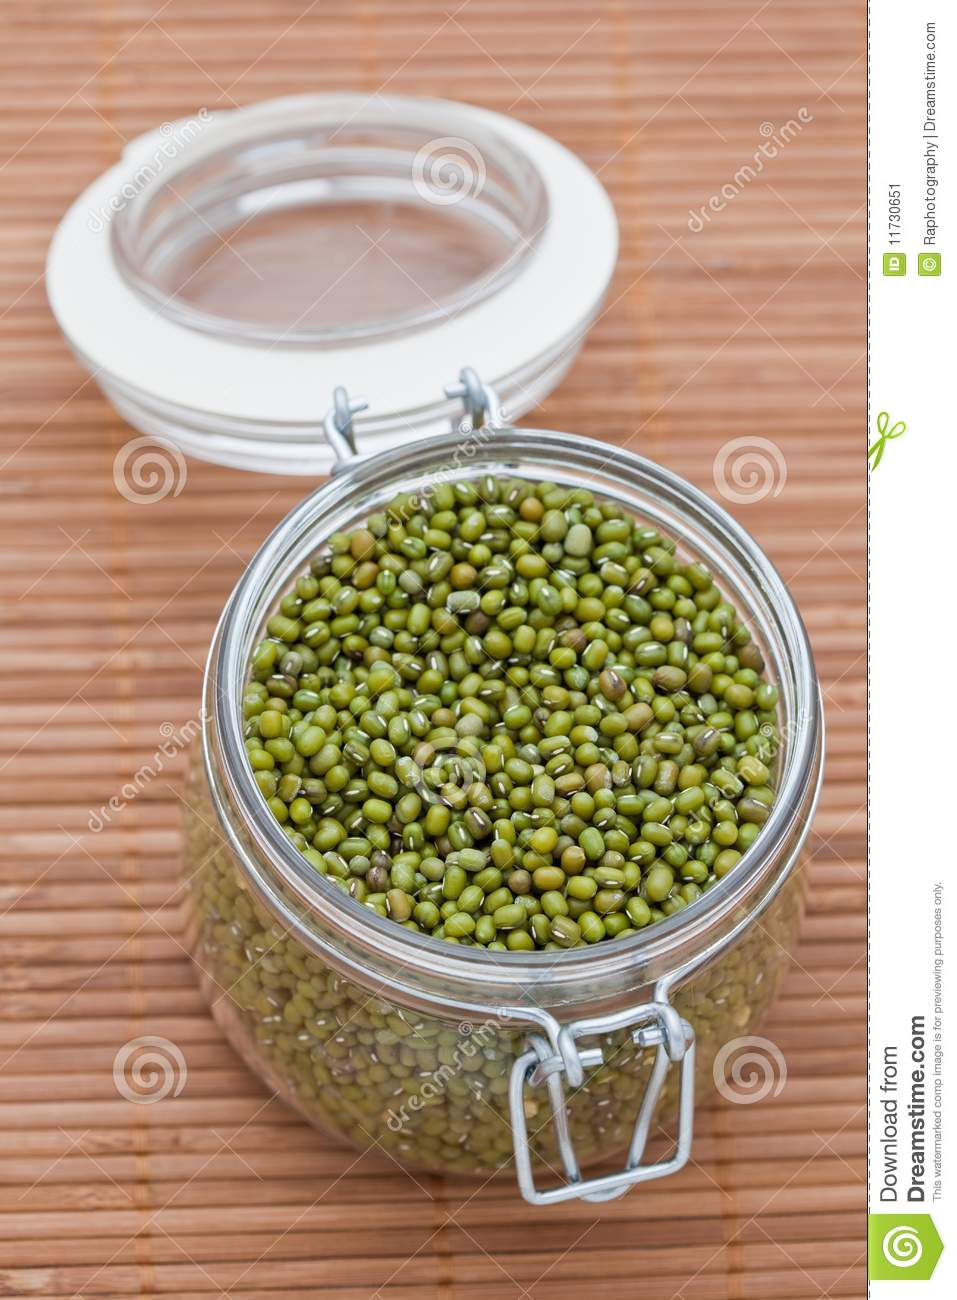 how to prepare dried mung beans